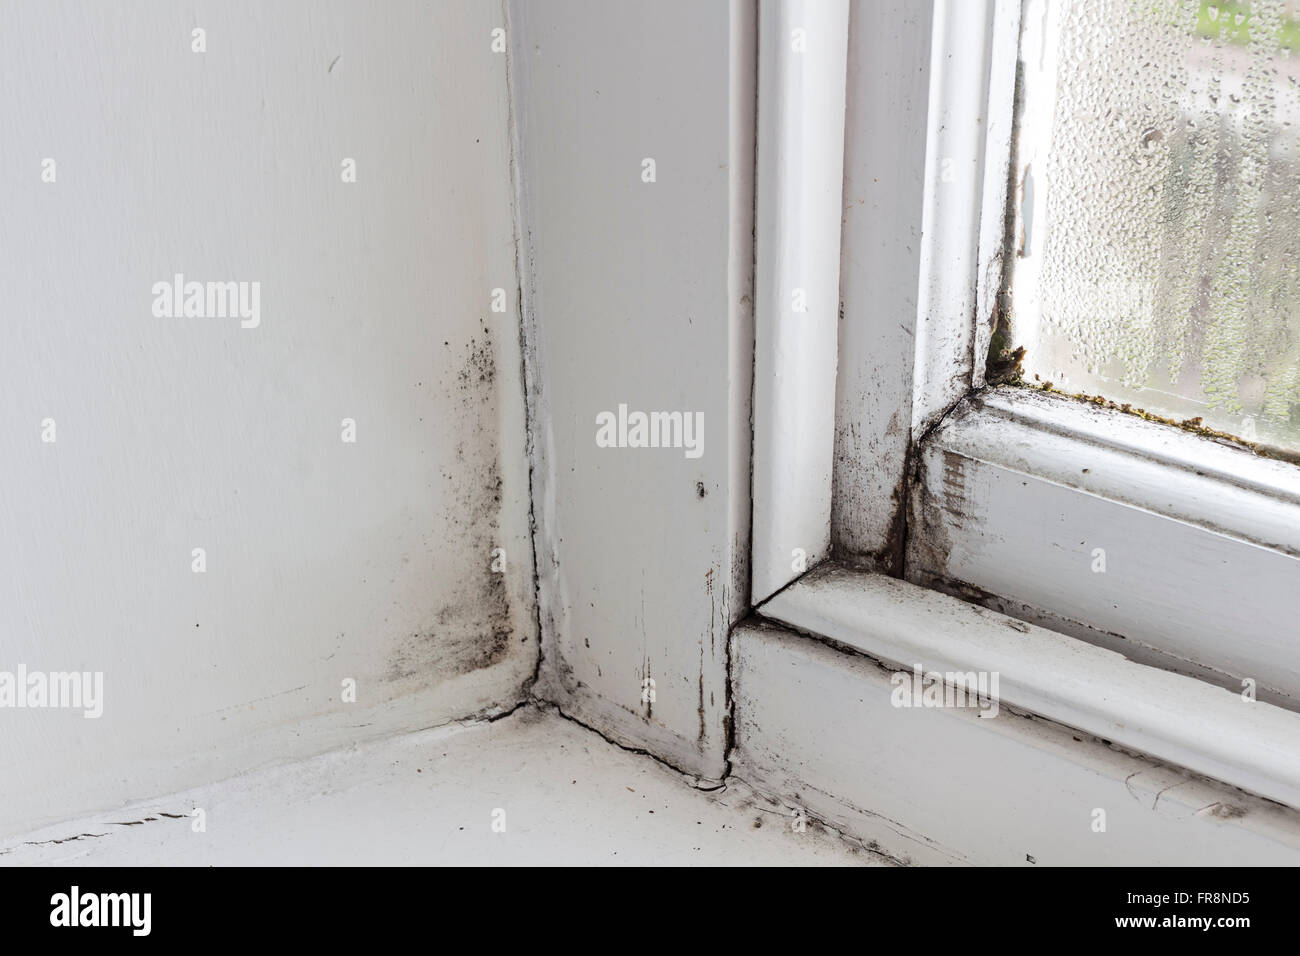 Perfect Rotten Window Frame With Condensation, Mould And Moss Growing In A Rented  House UK